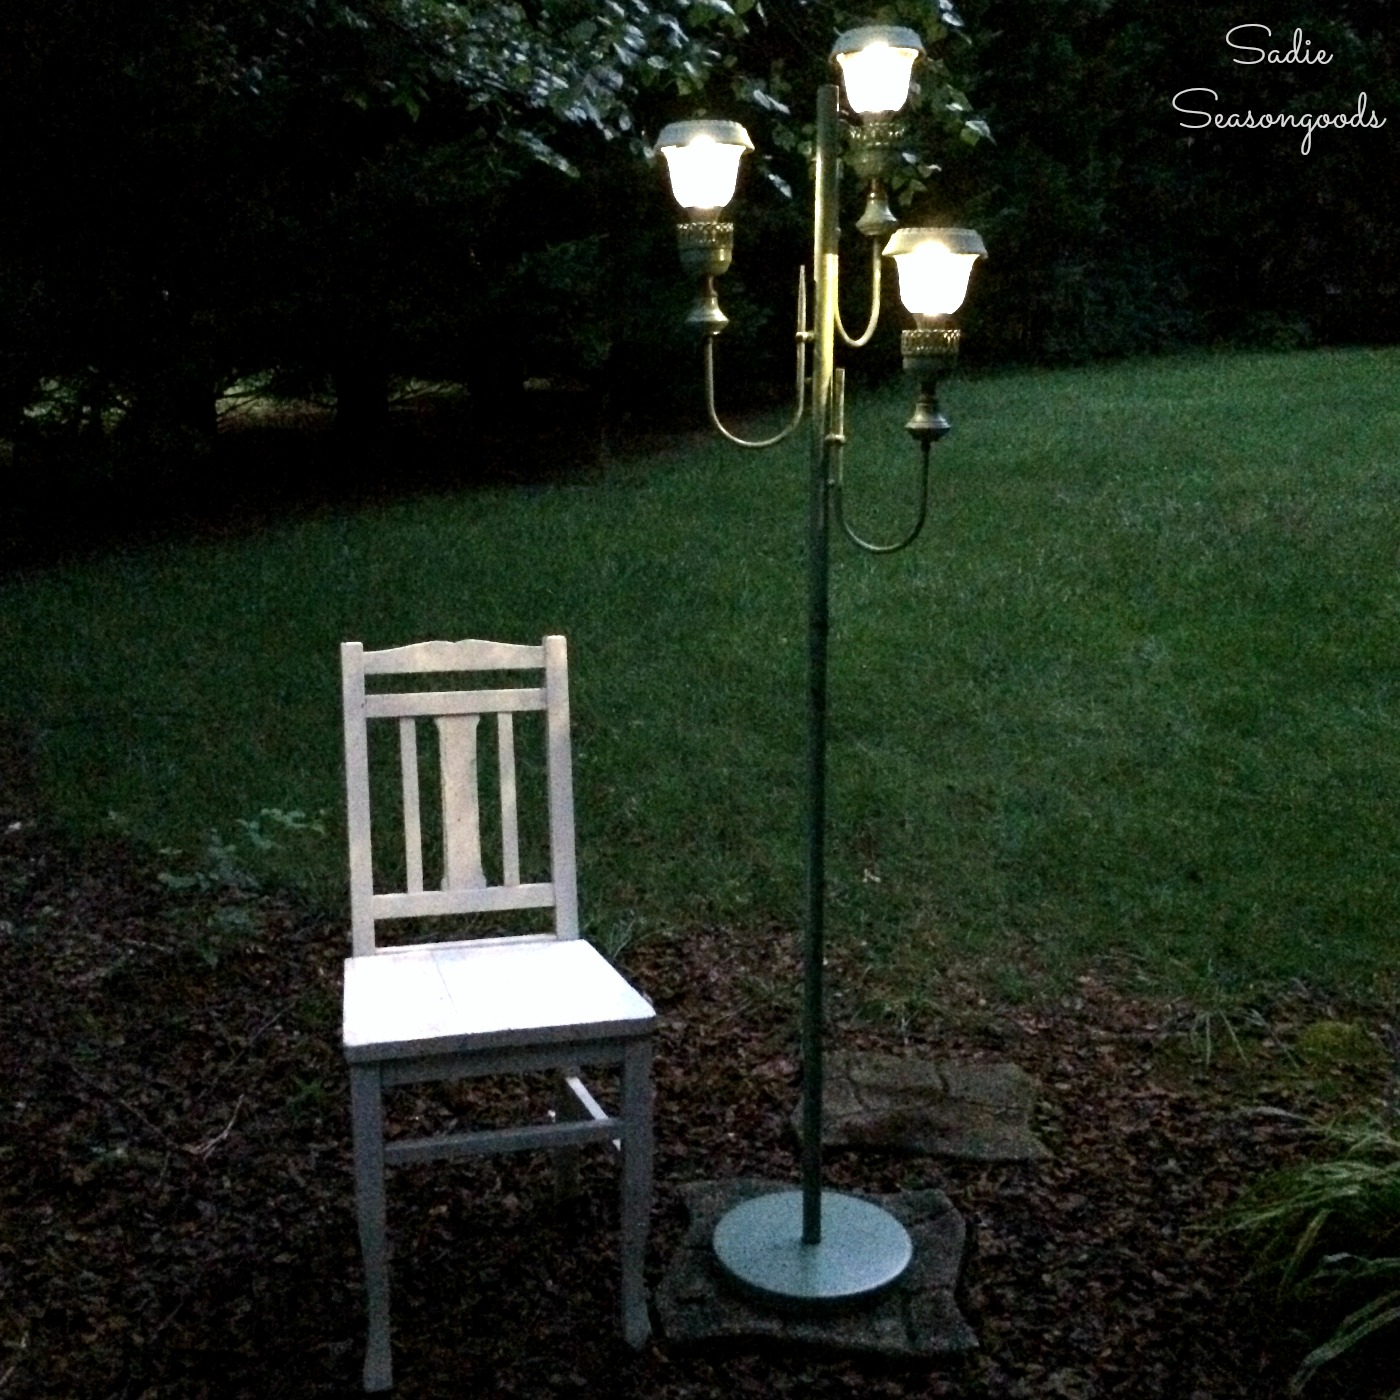 How to upcycle an antique floor lamp using small solar lights or solar driveway lights for backyard decor by Sadie Seasongoods